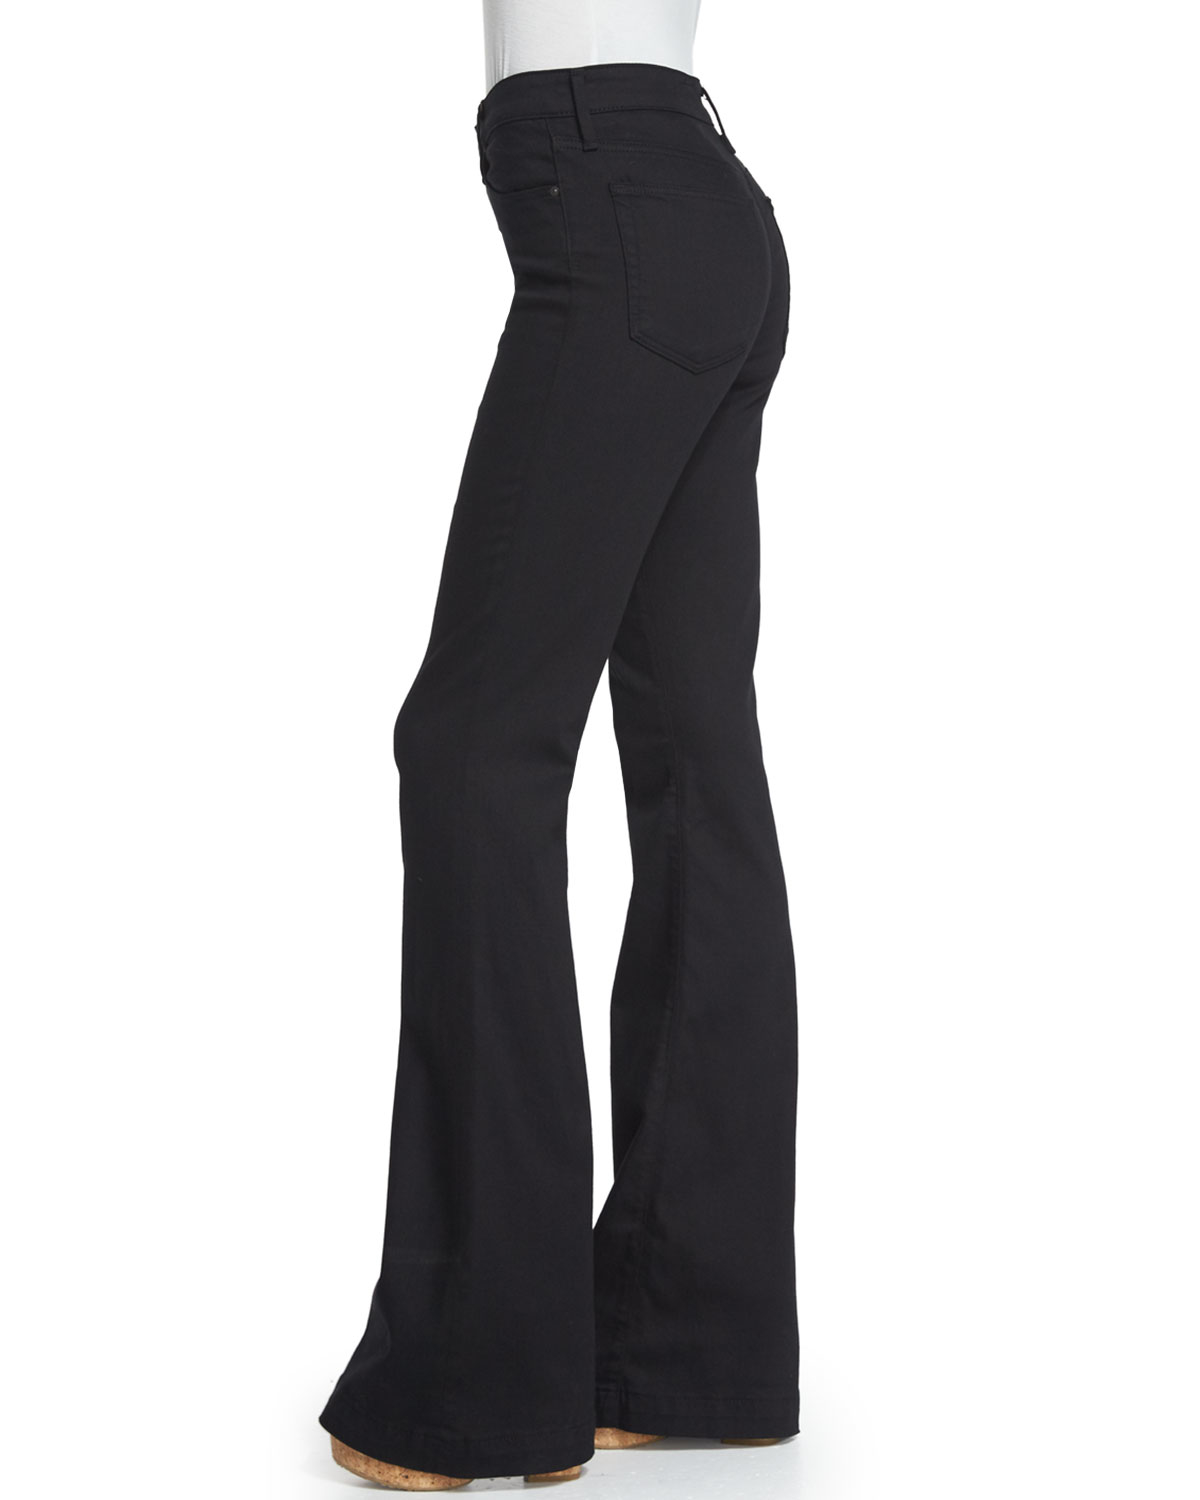 Ag jeans Janis High-waist Super-flare Jeans in Black | Lyst